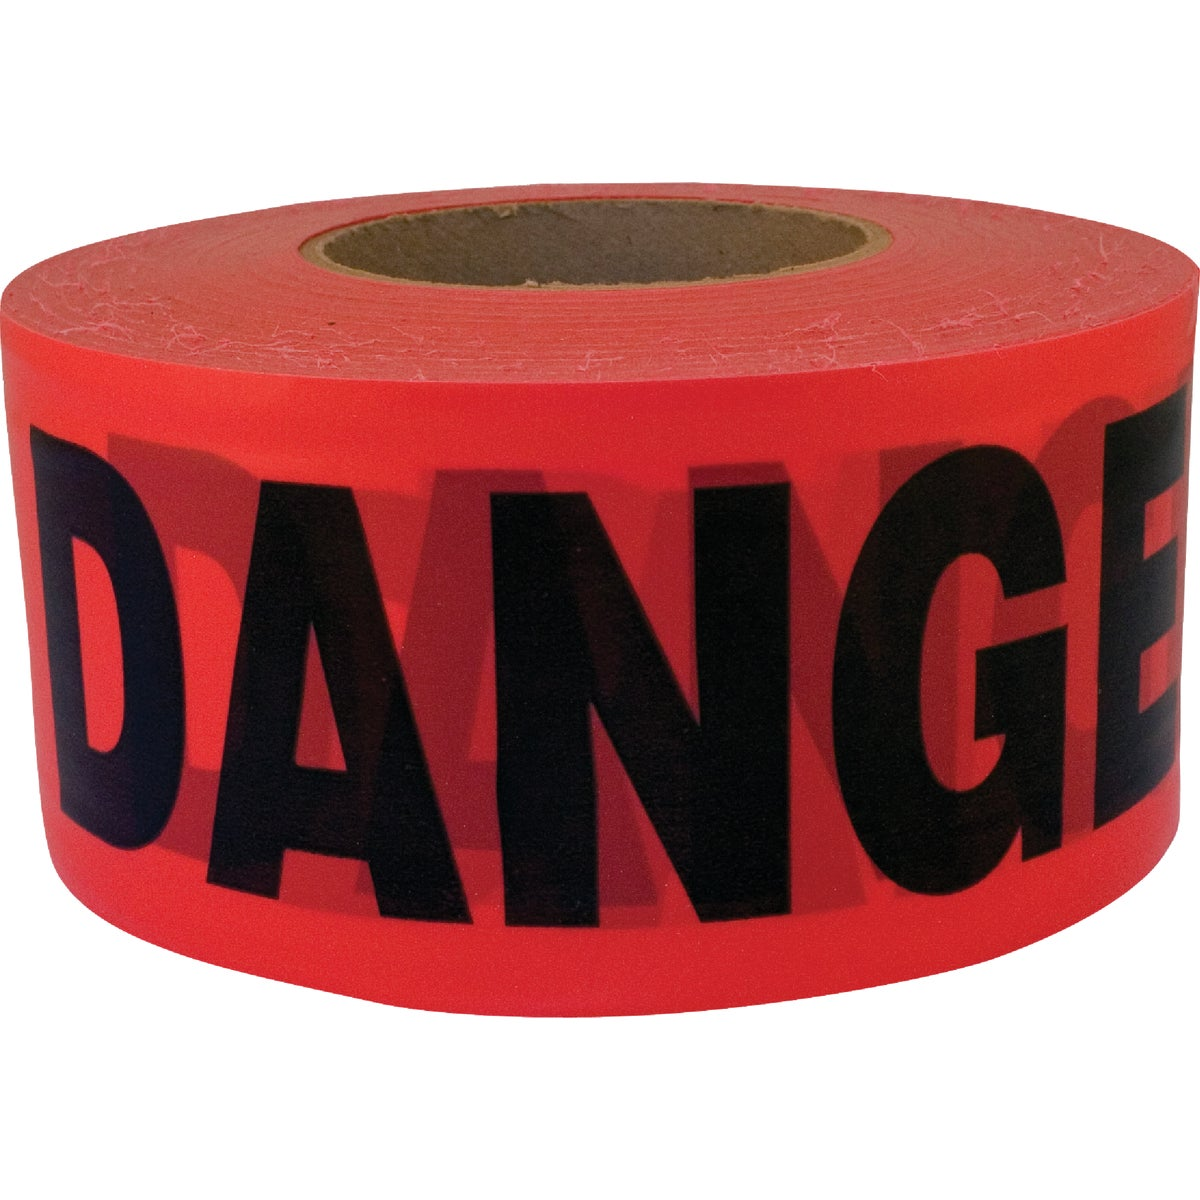 LEAD ABATMT WARNING TAPE - 16012 by Hanson C H Co